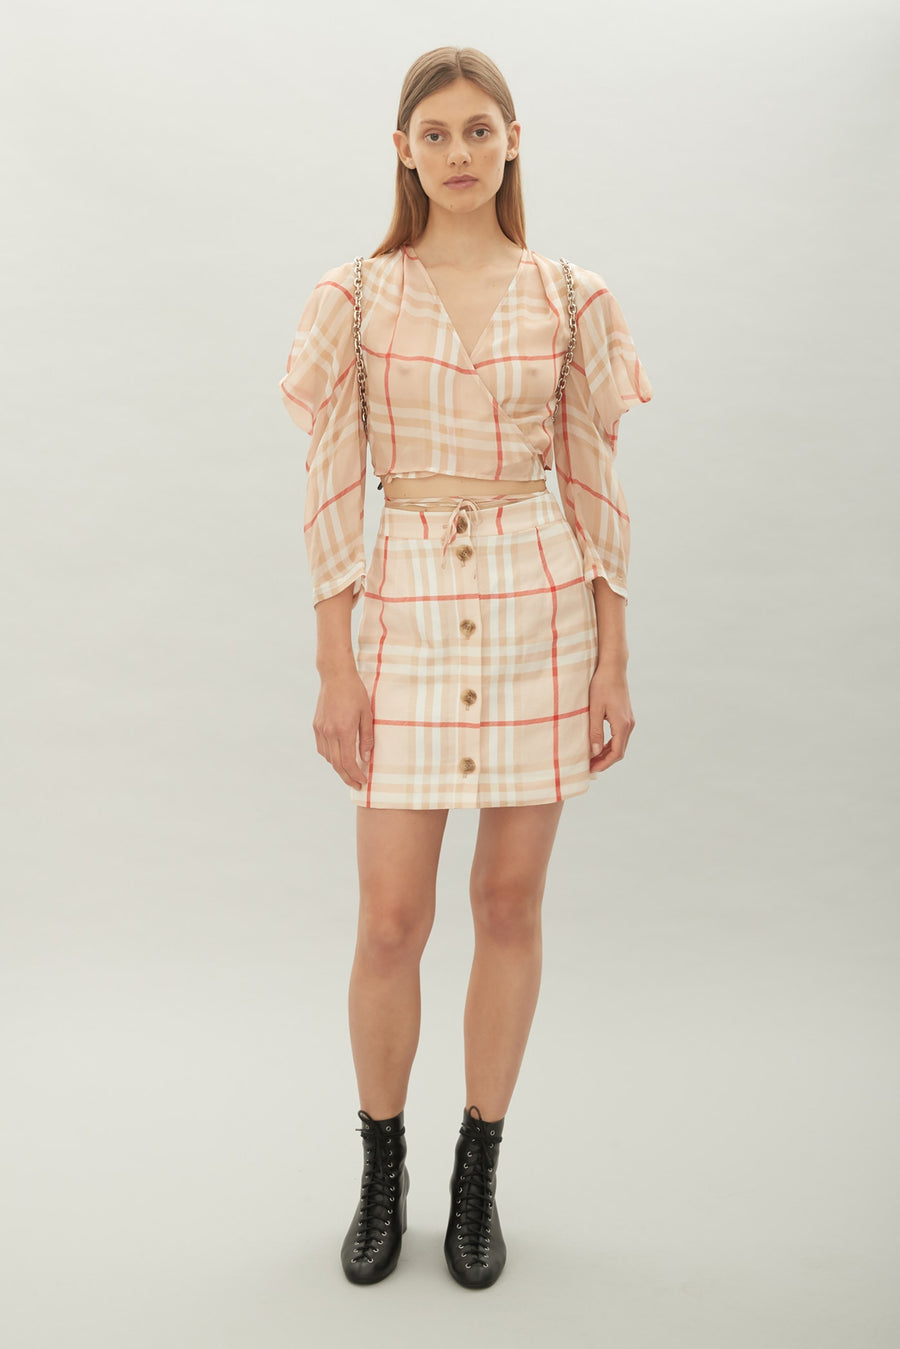 HANSEN & GRETEL - Briony Skirt - tan Check